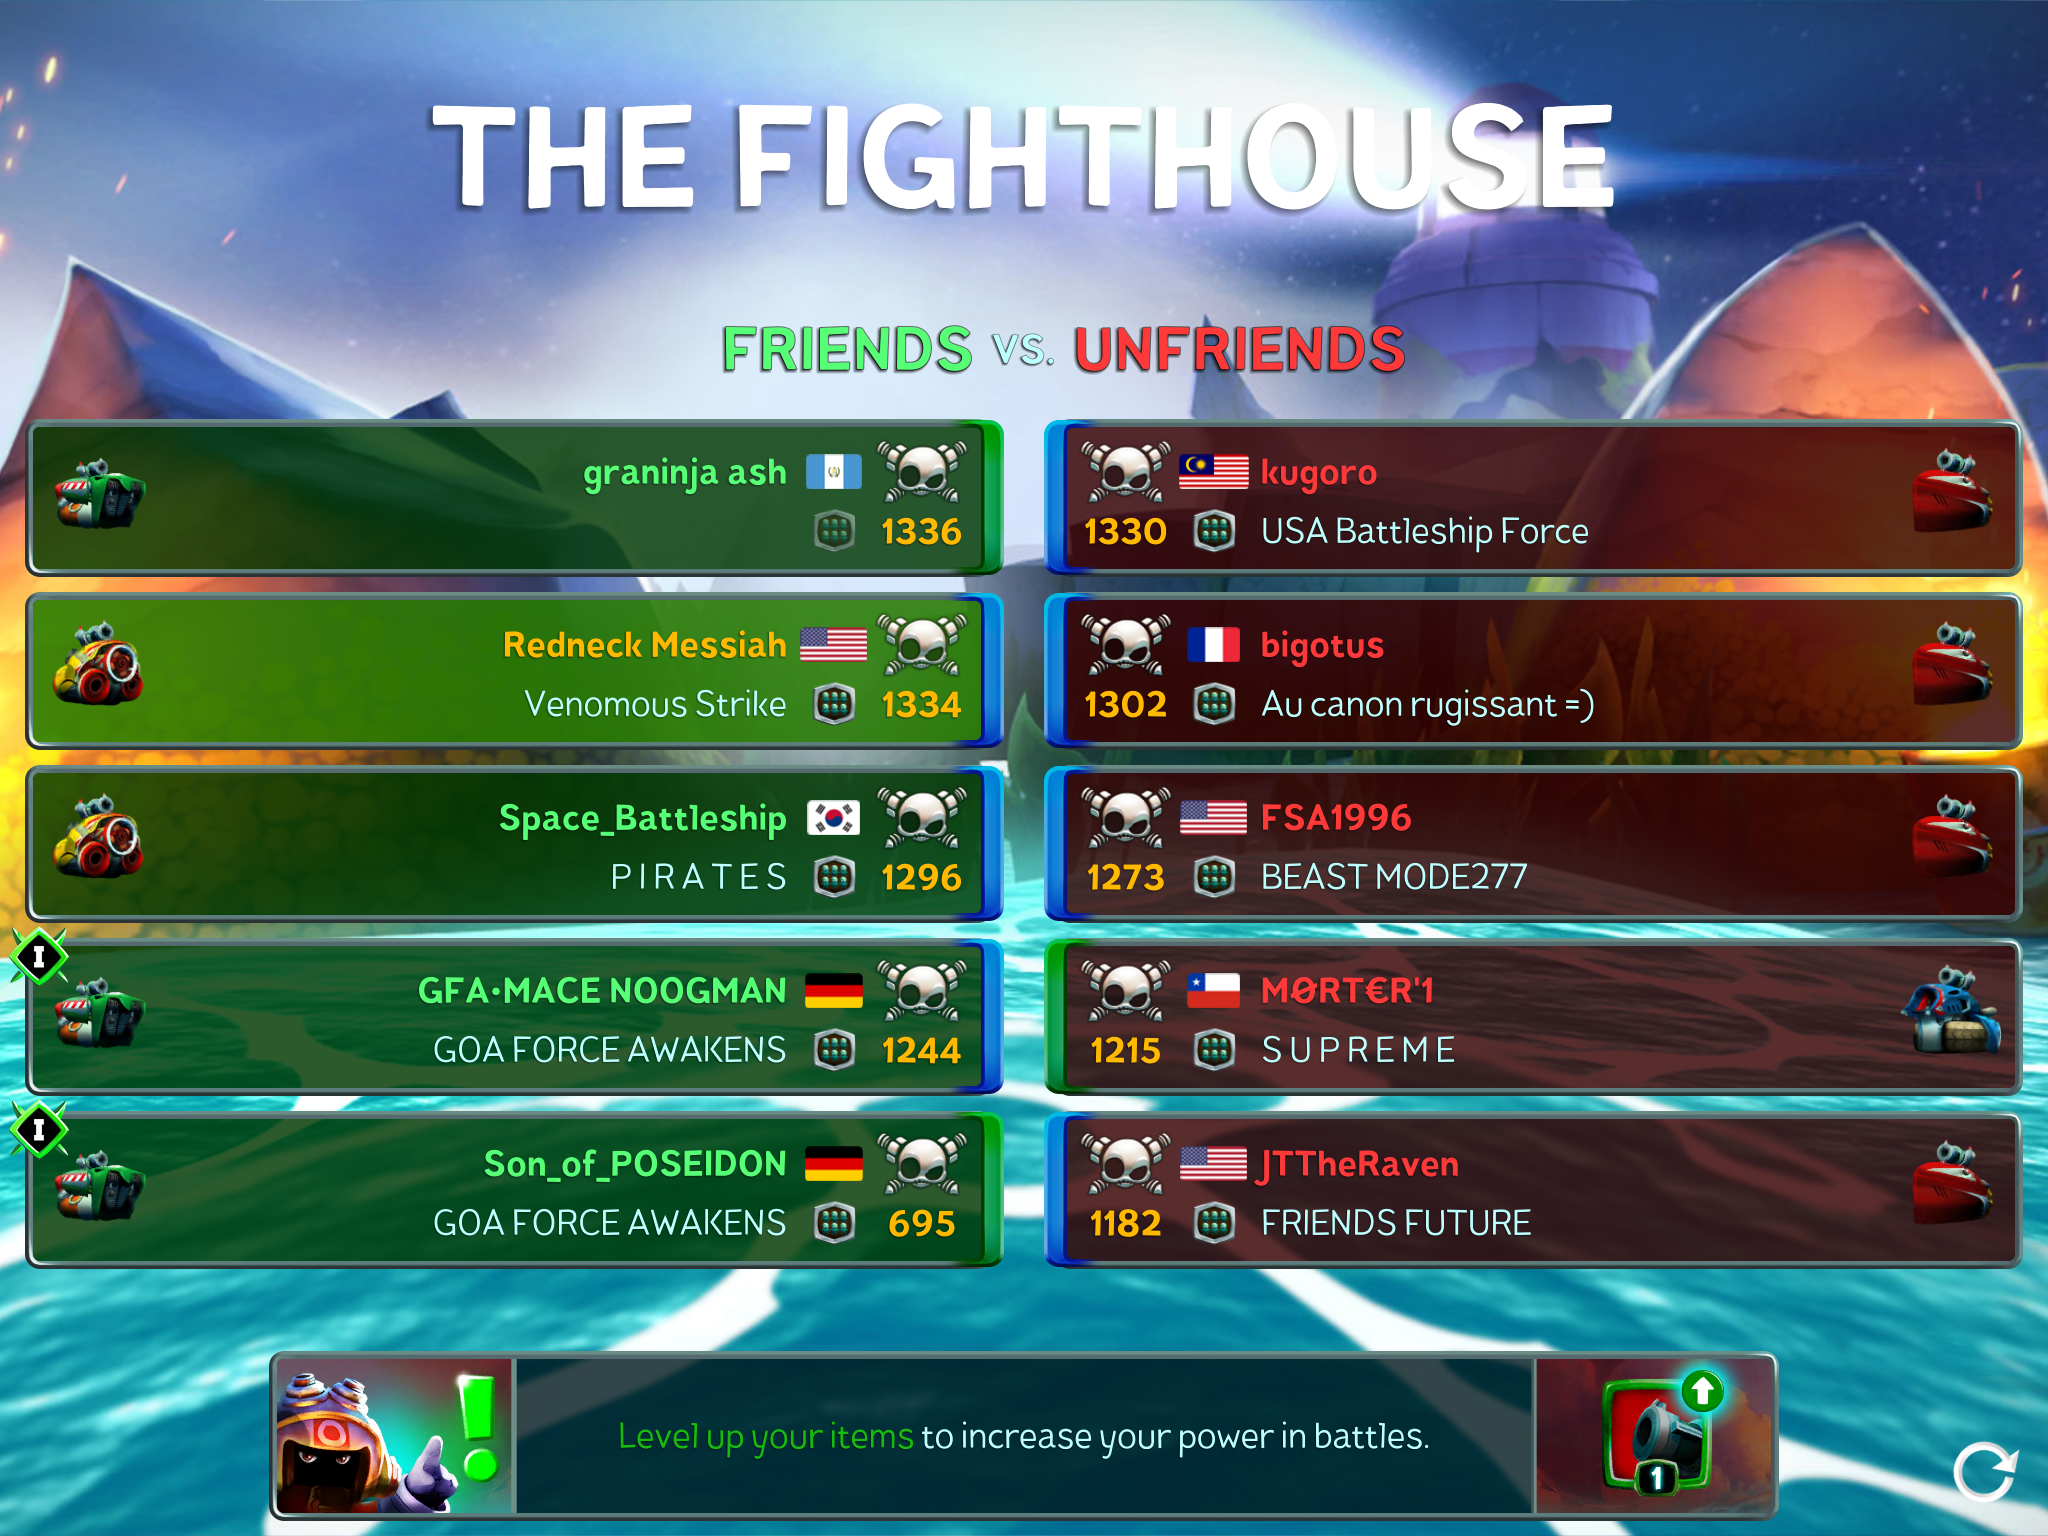 matchmaking is really drunk.png